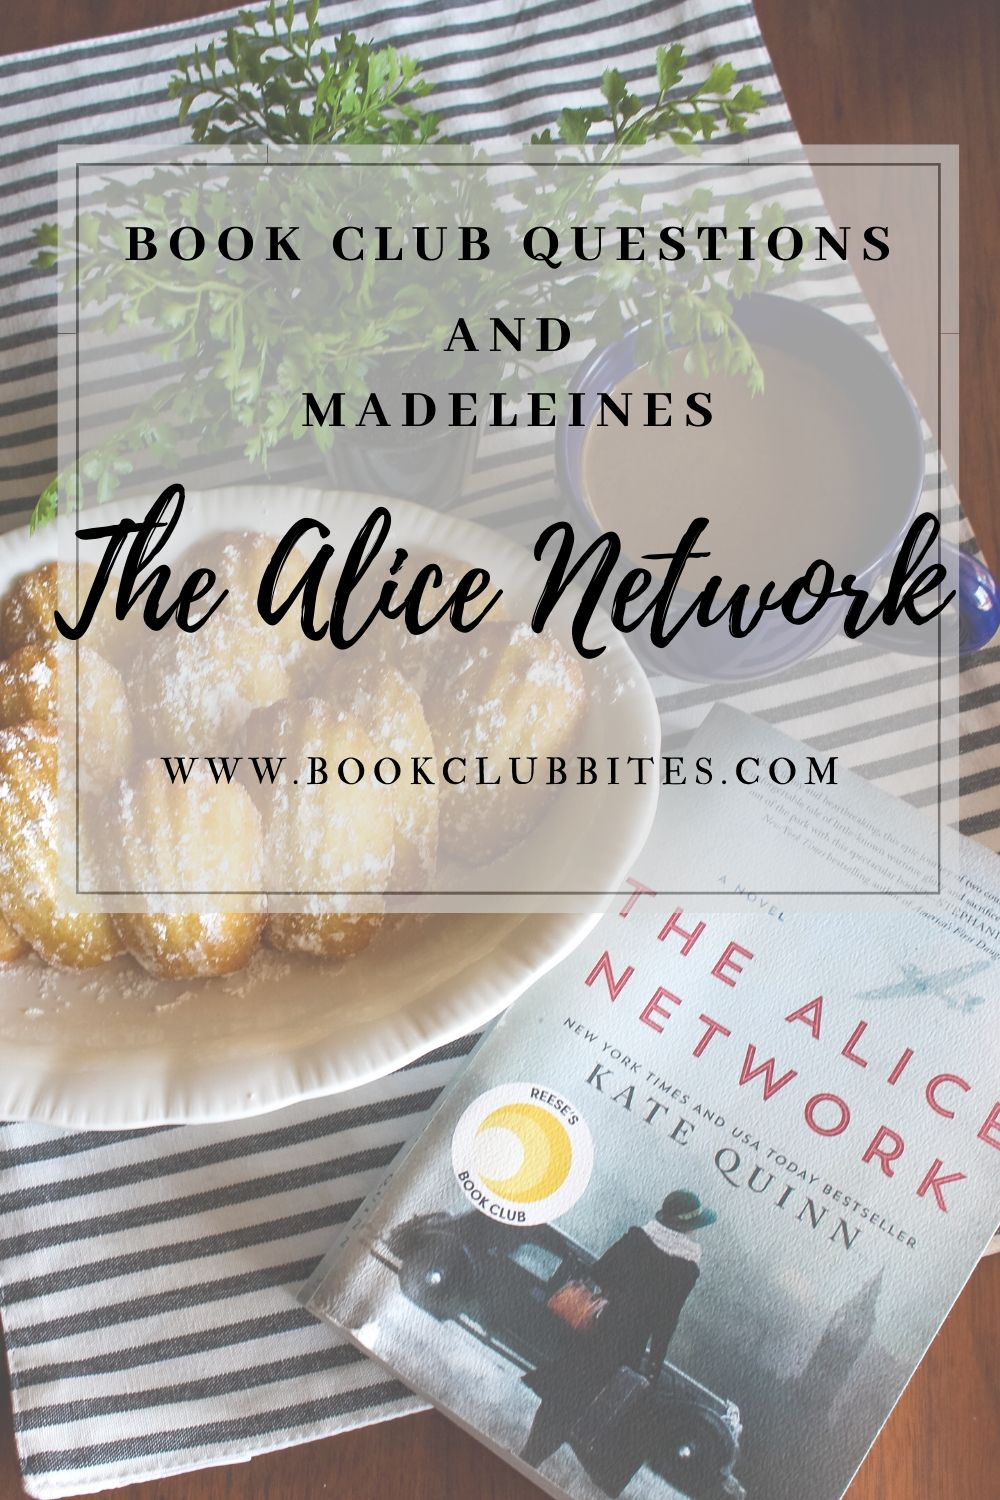 The Alice Network Book Club Questions and Recipe